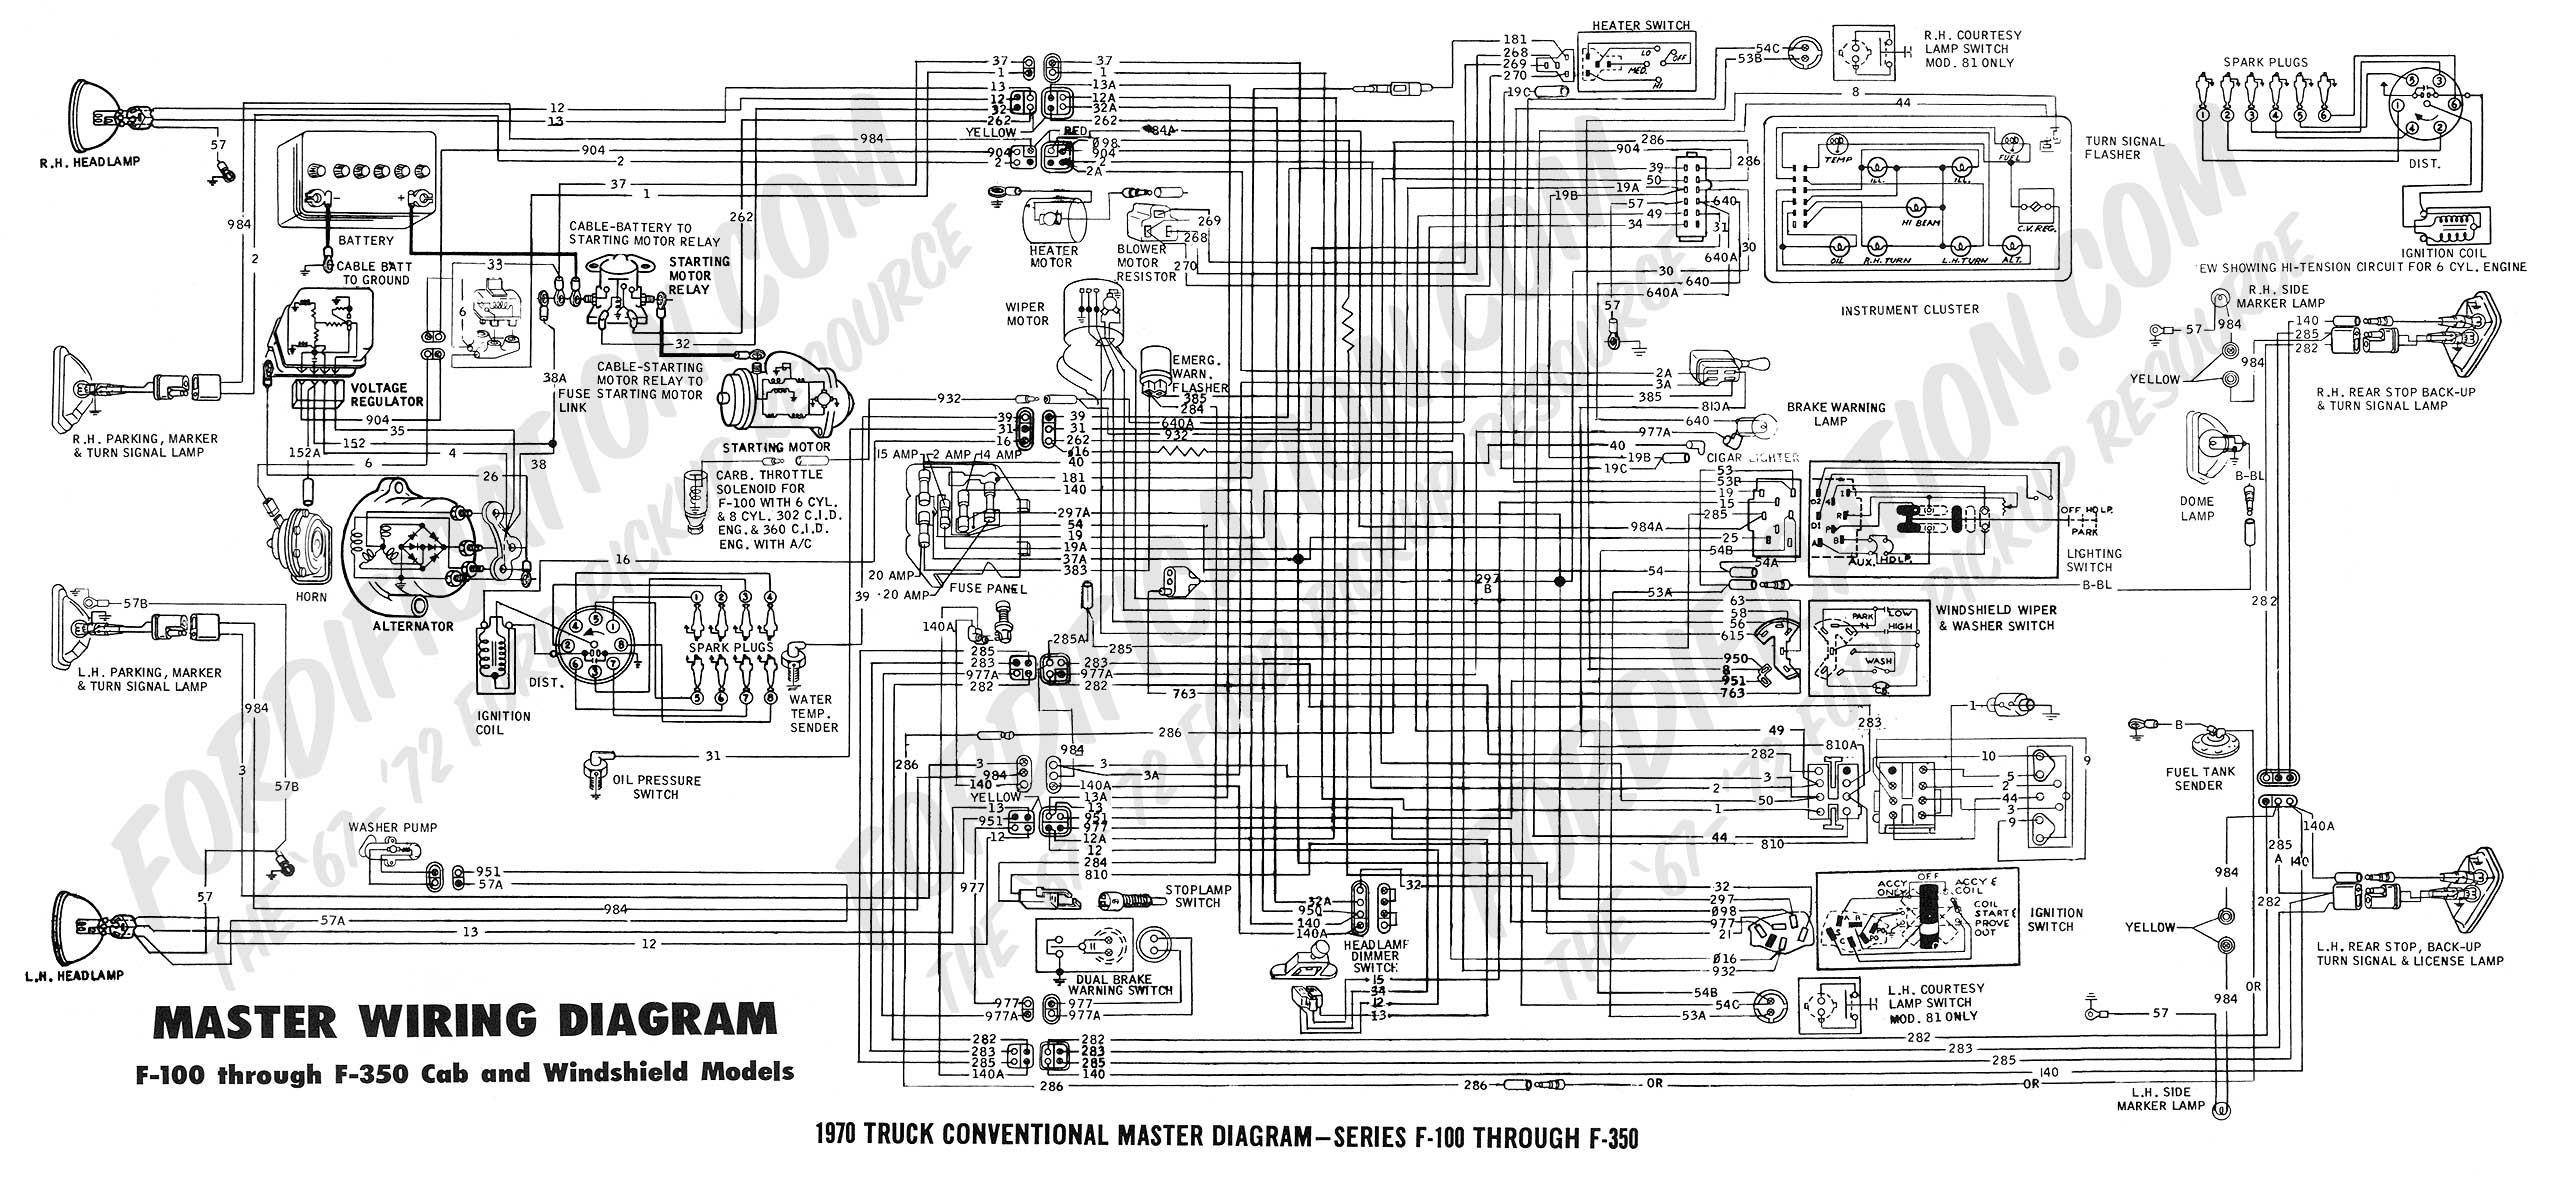 86 f150 wiring diagram 86 wiring diagrams online 1970 f 100 f250 master diagram